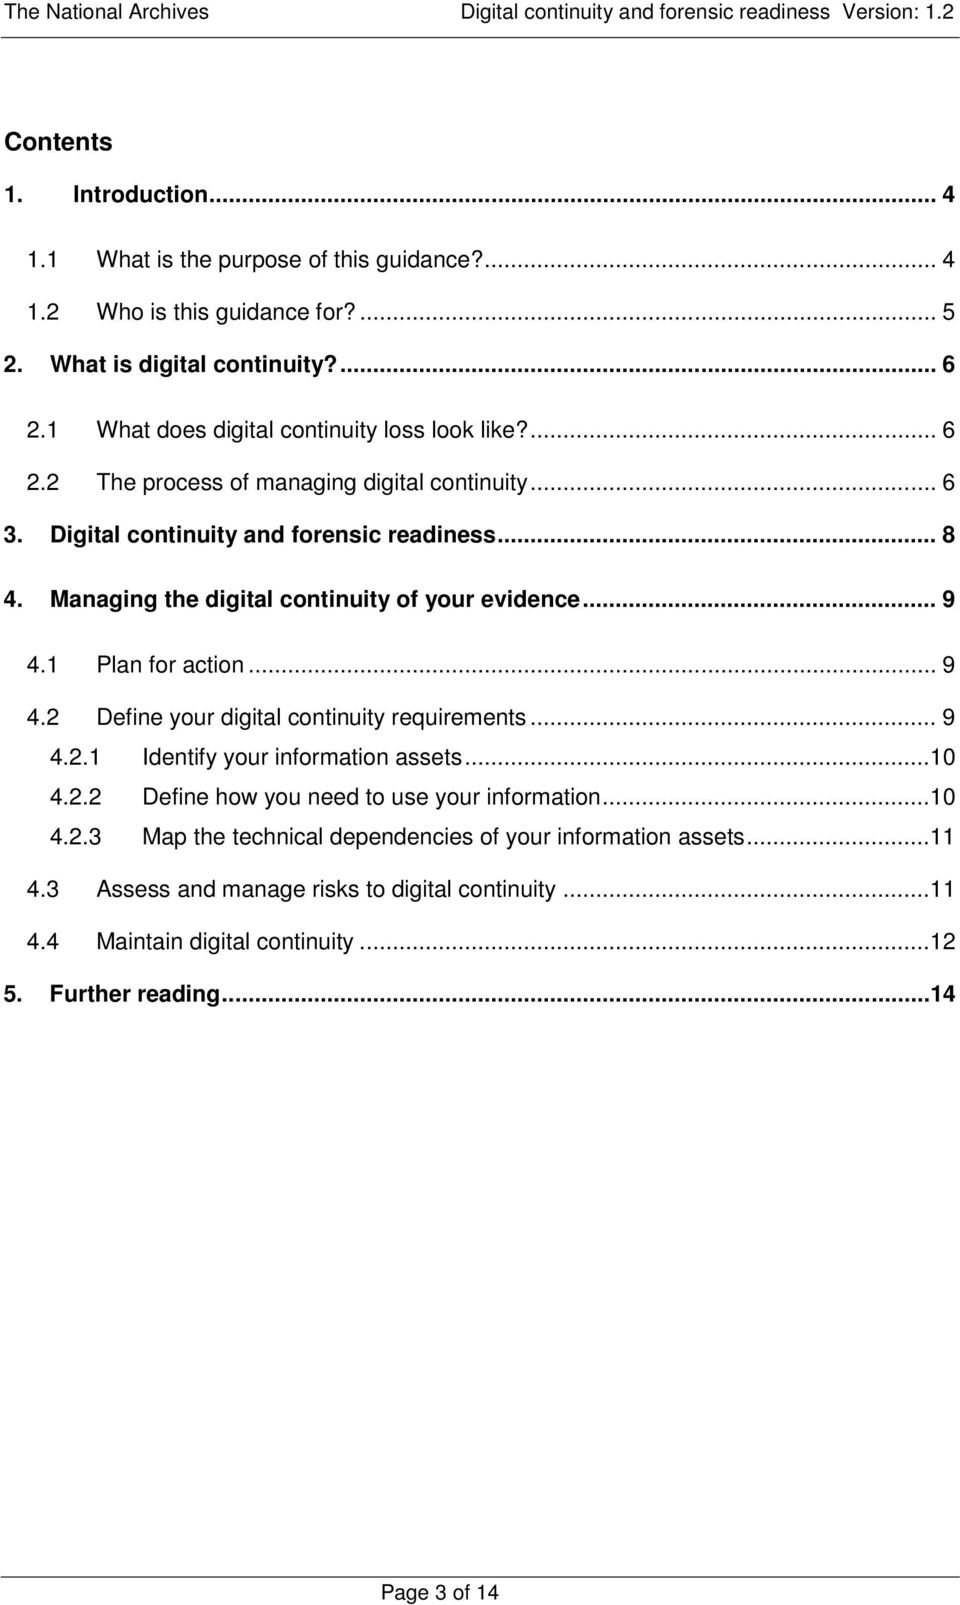 Managing the digital continuity of your evidence... 9 4.1 Plan for action... 9 4.2 Define your digital continuity requirements... 9 4.2.1 Identify your information assets...10 4.2.2 Define how you need to use your information.